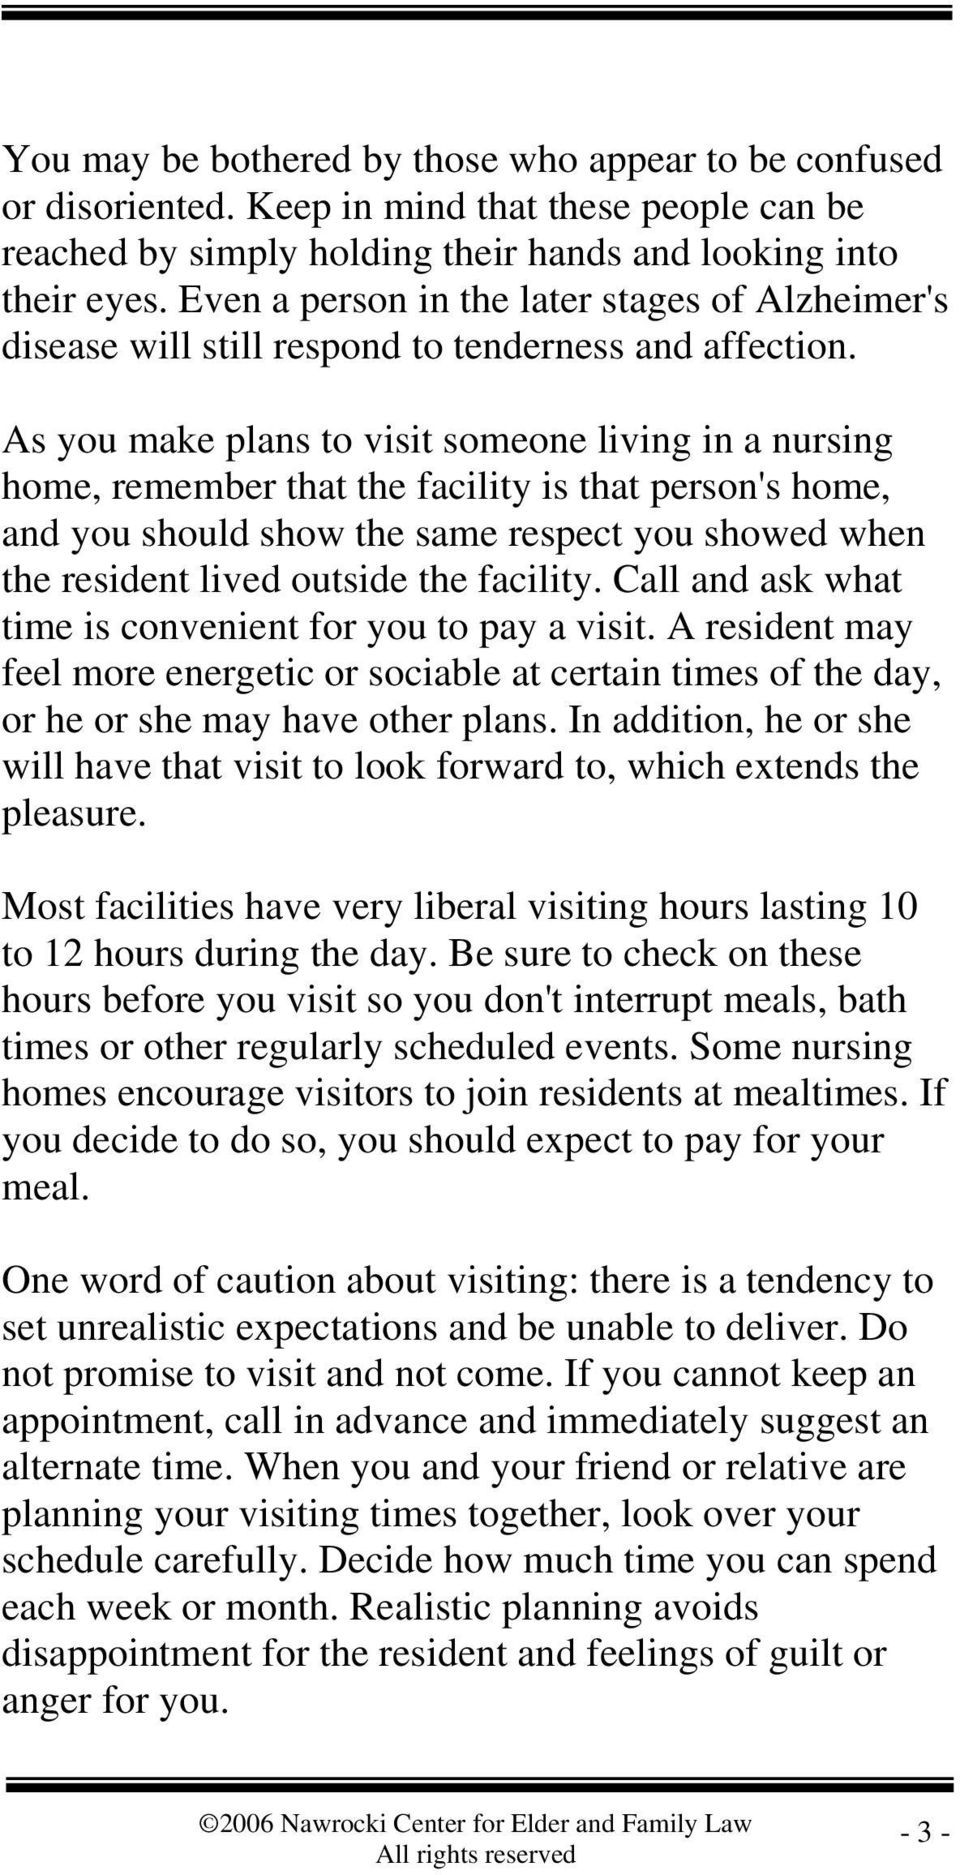 As you make plans to visit someone living in a nursing home, remember that the facility is that person's home, and you should show the same respect you showed when the resident lived outside the